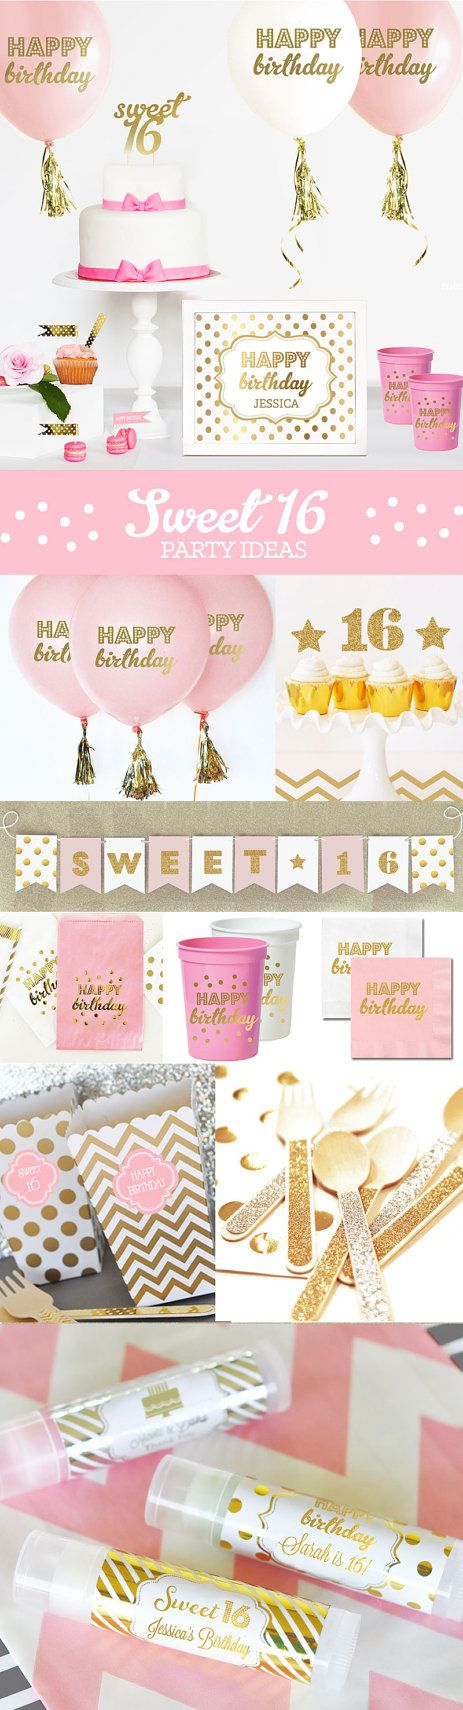 Sweet 16 Favors Sweet Sixteen Party Favors Sweet 16 by ModParty